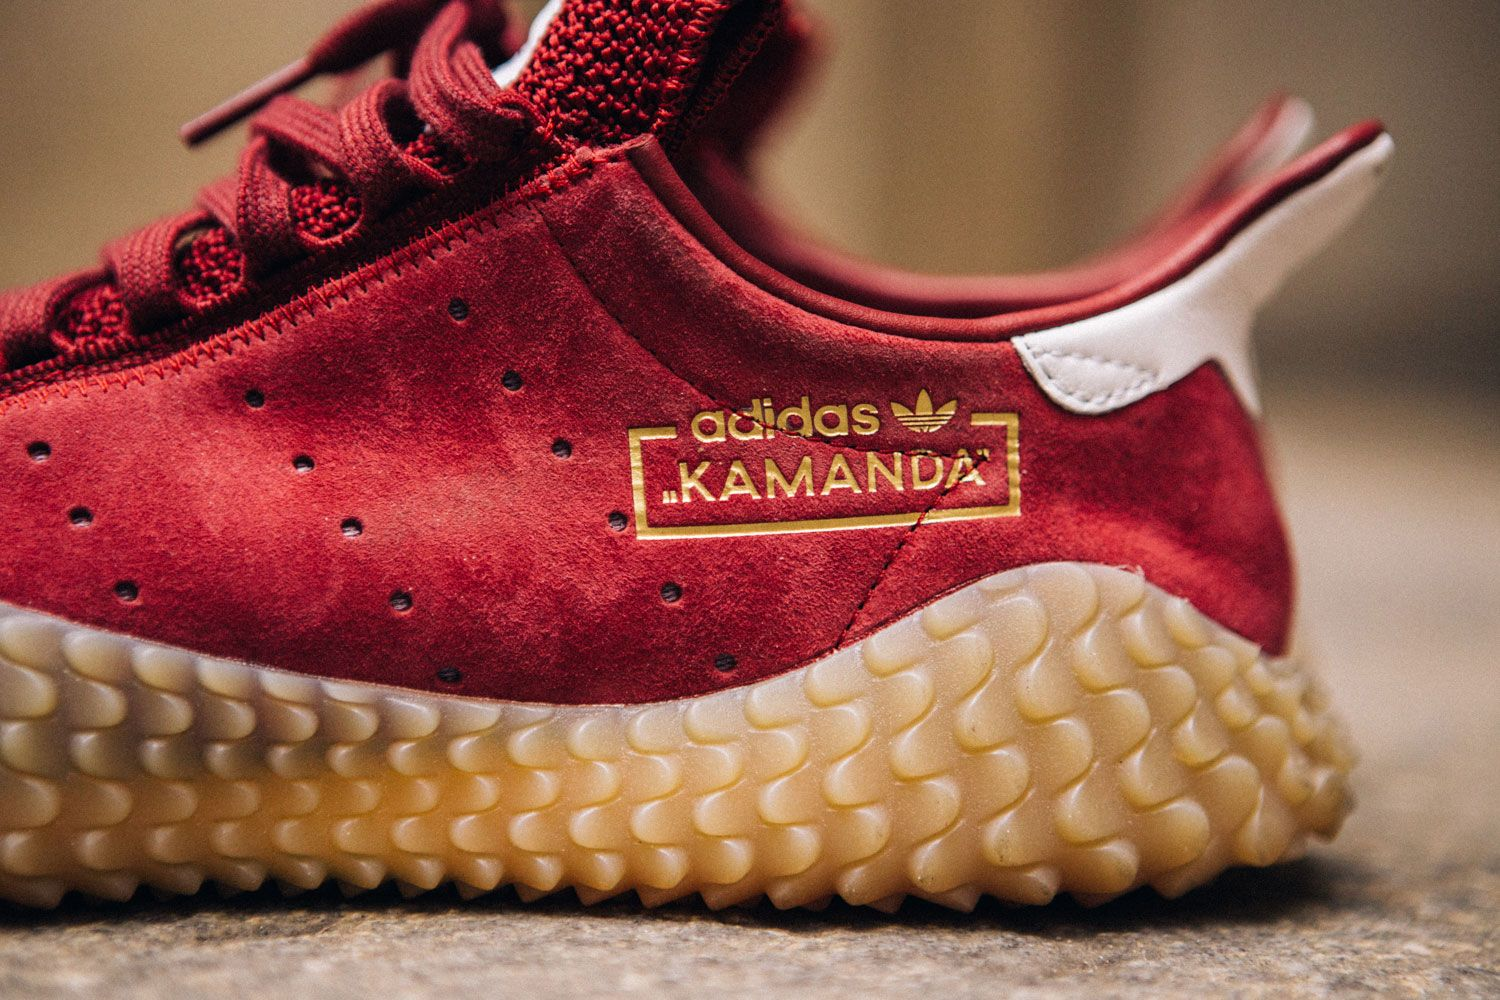 4c42d4f9956 Here's a Sneak Peek at the adidas x C.P. Company Collab | Trainers ...